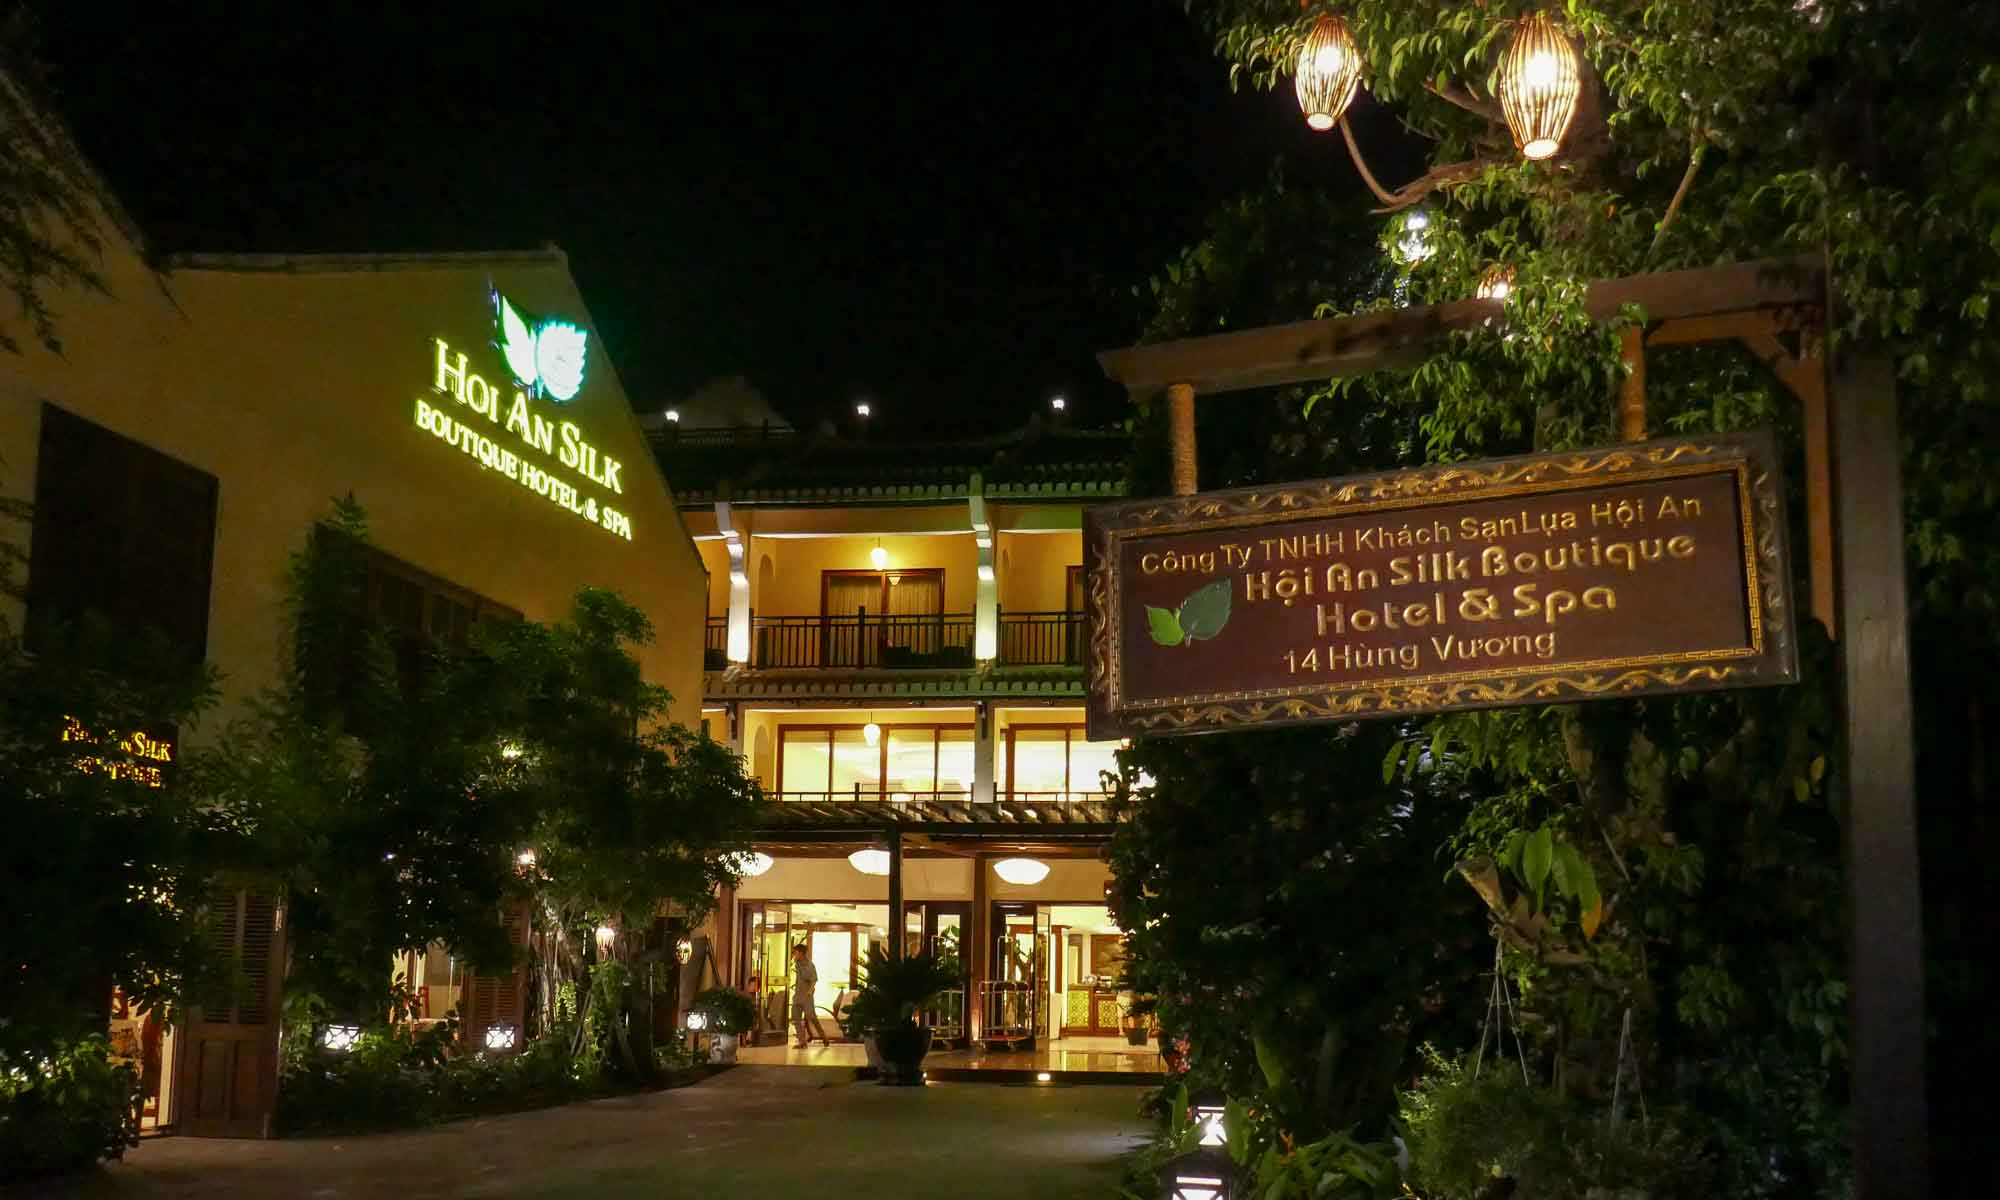 Hoi An Silk Boutique Hotel & Spa by night